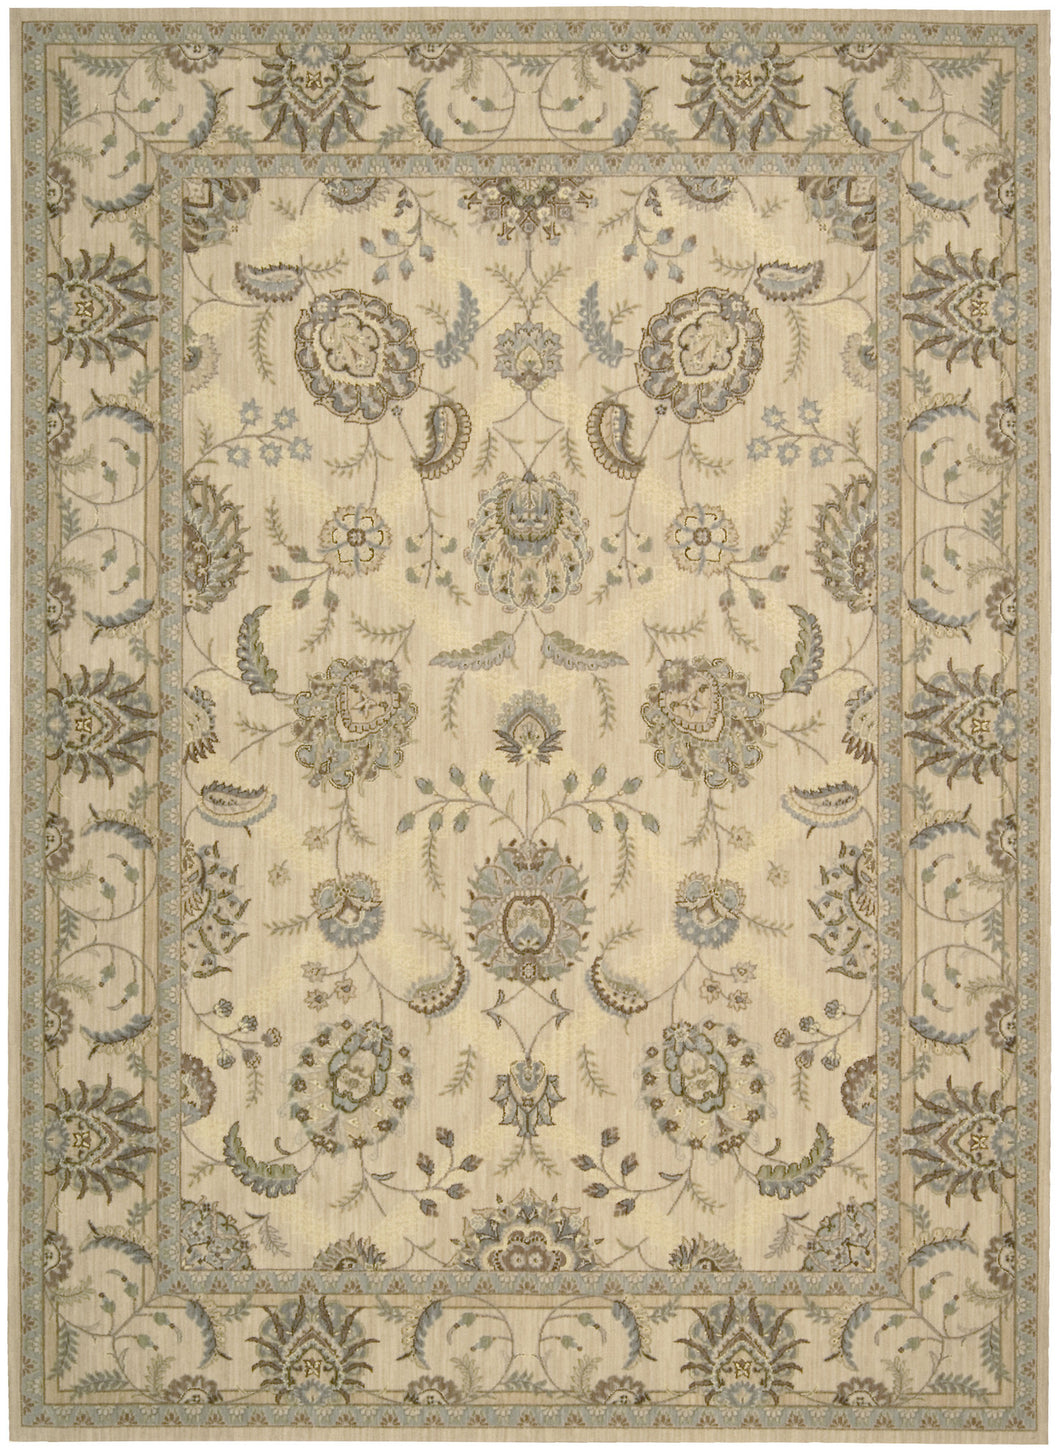 Nourison Persian Empire Ivory Area Rug PE22 IV